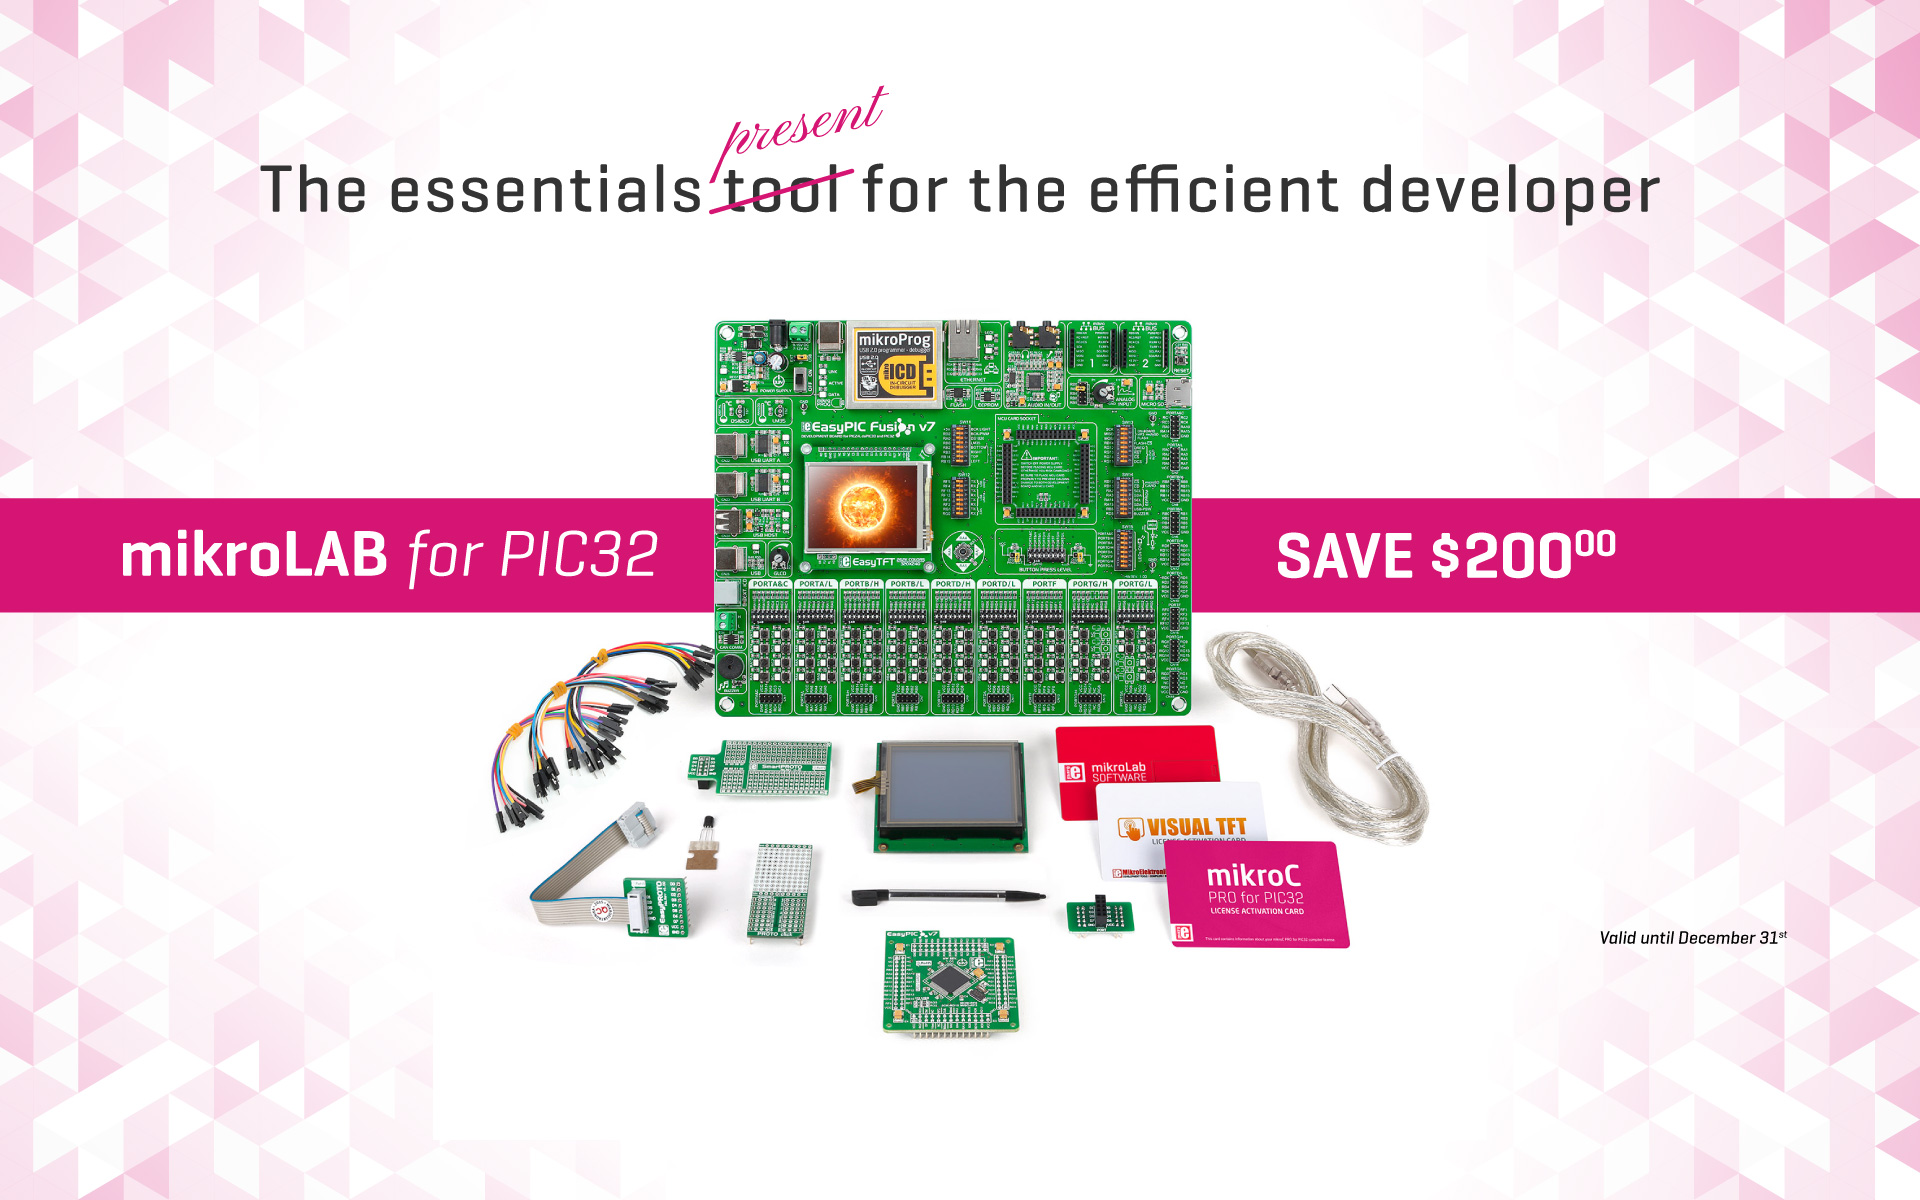 mikroLAB for PIC32 - perfect present for an efficient developer